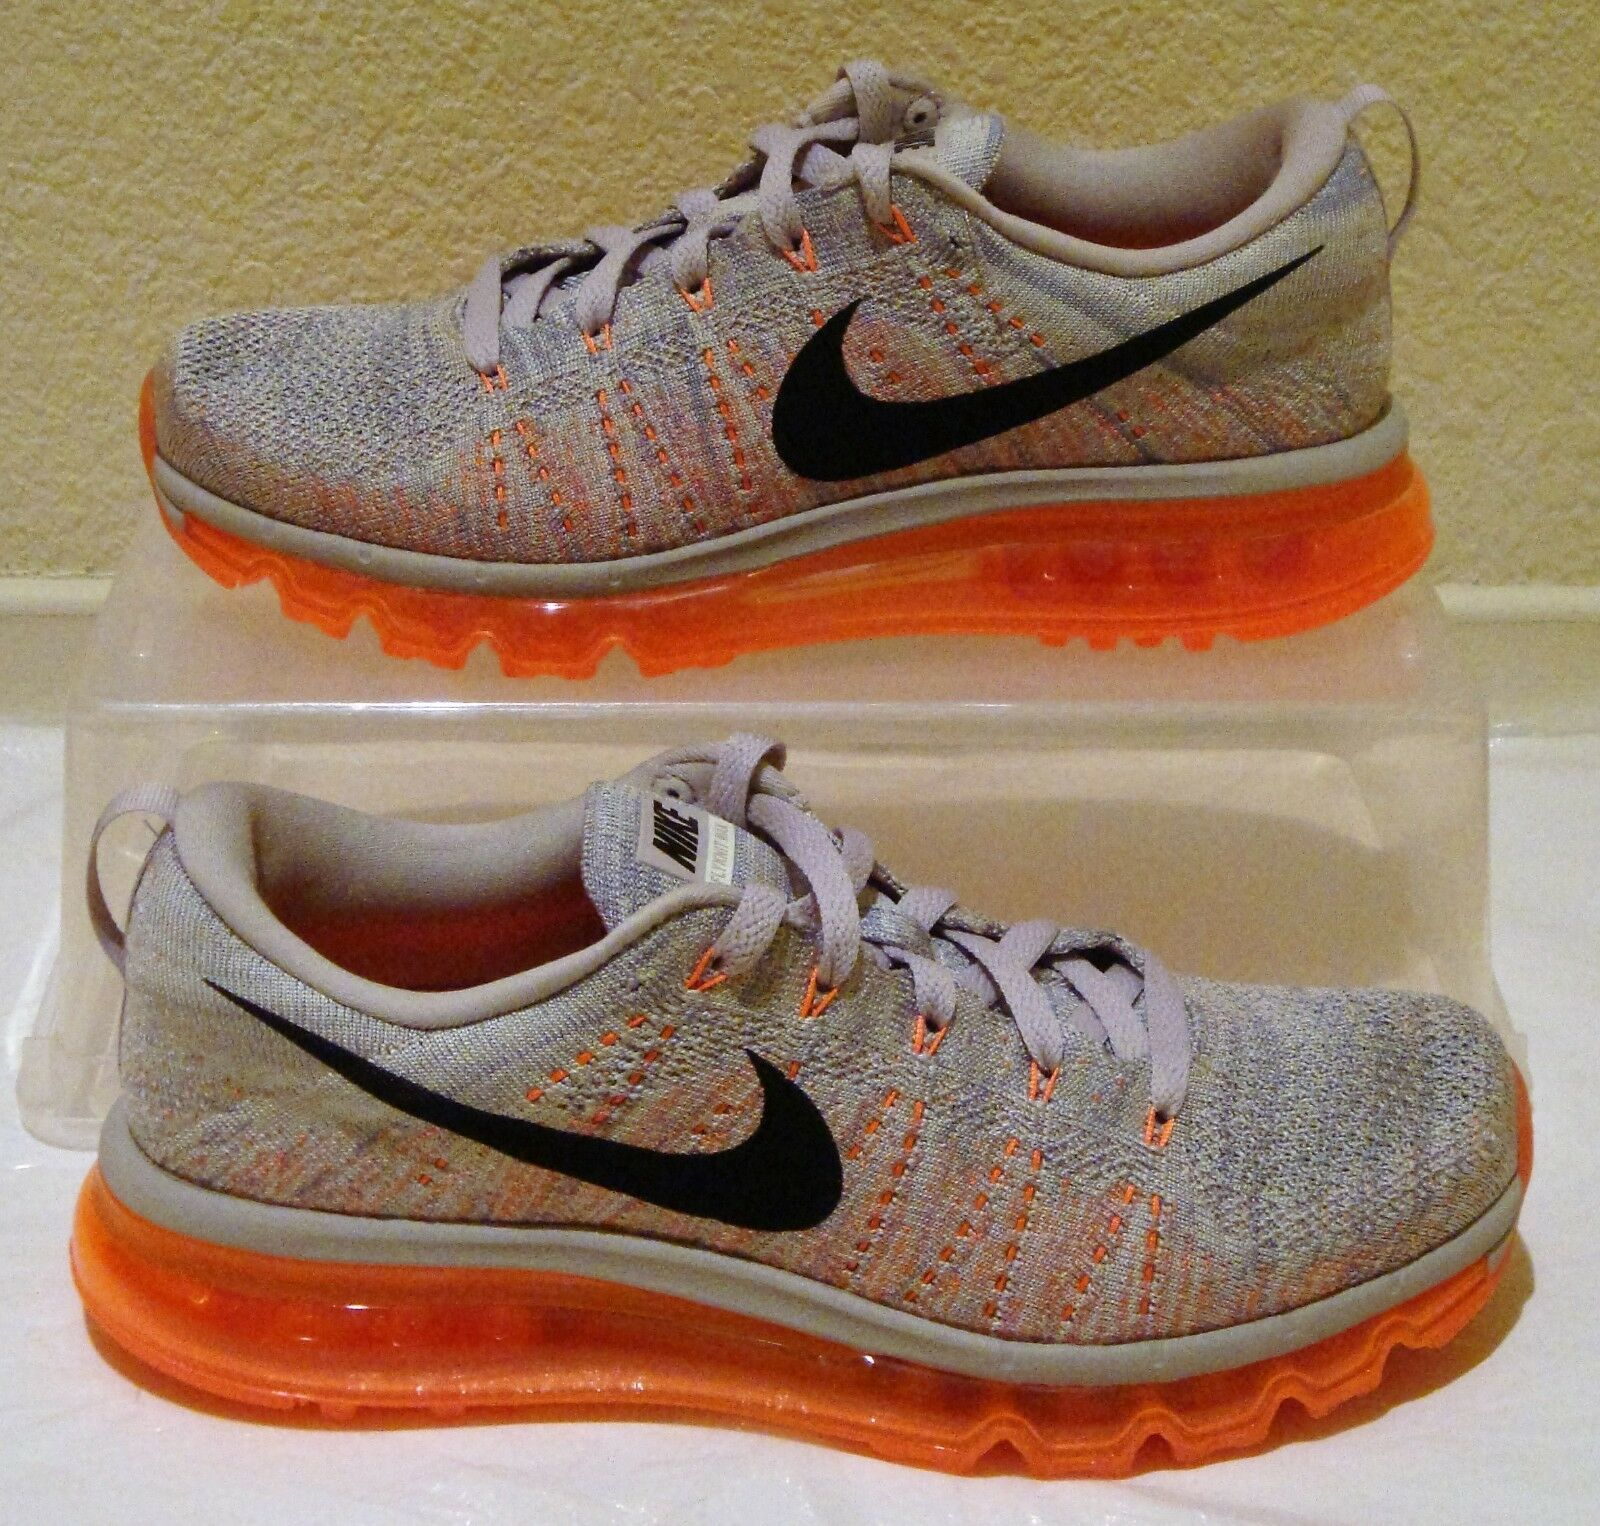 New Nike Air Flyknit Max Ash orange Sail Womens US Size 9